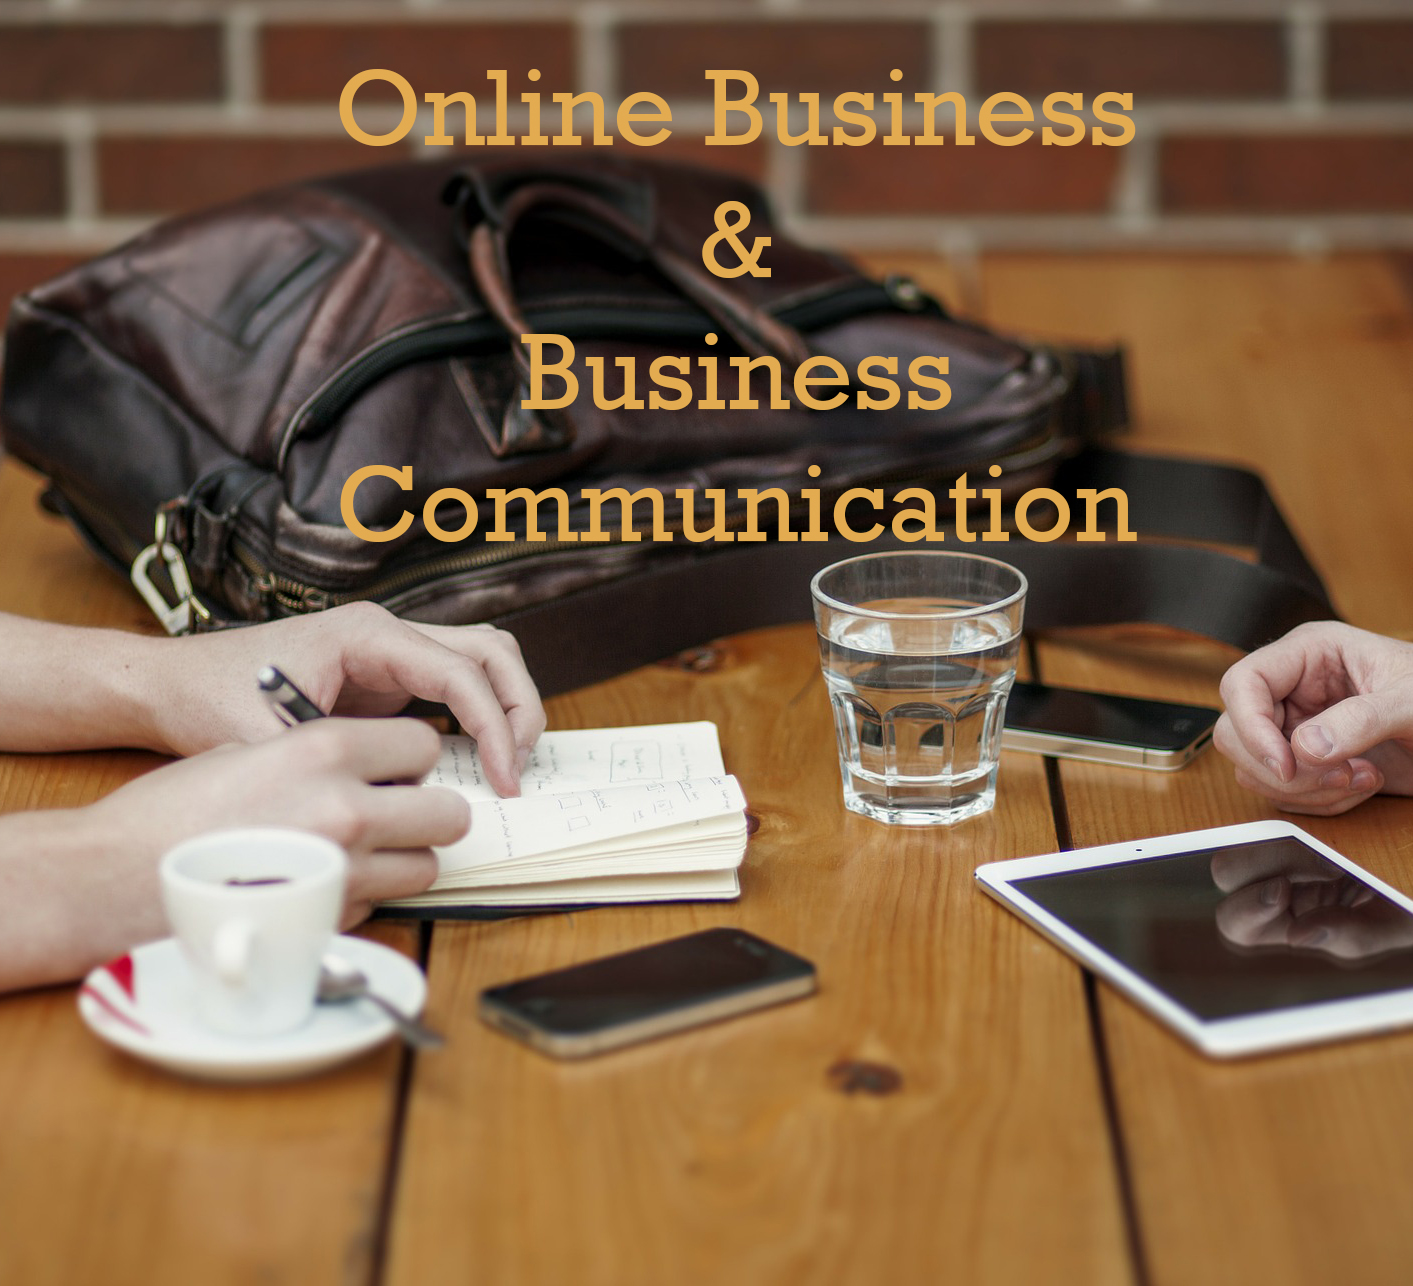 uploads/category/Online Business & Business Communication